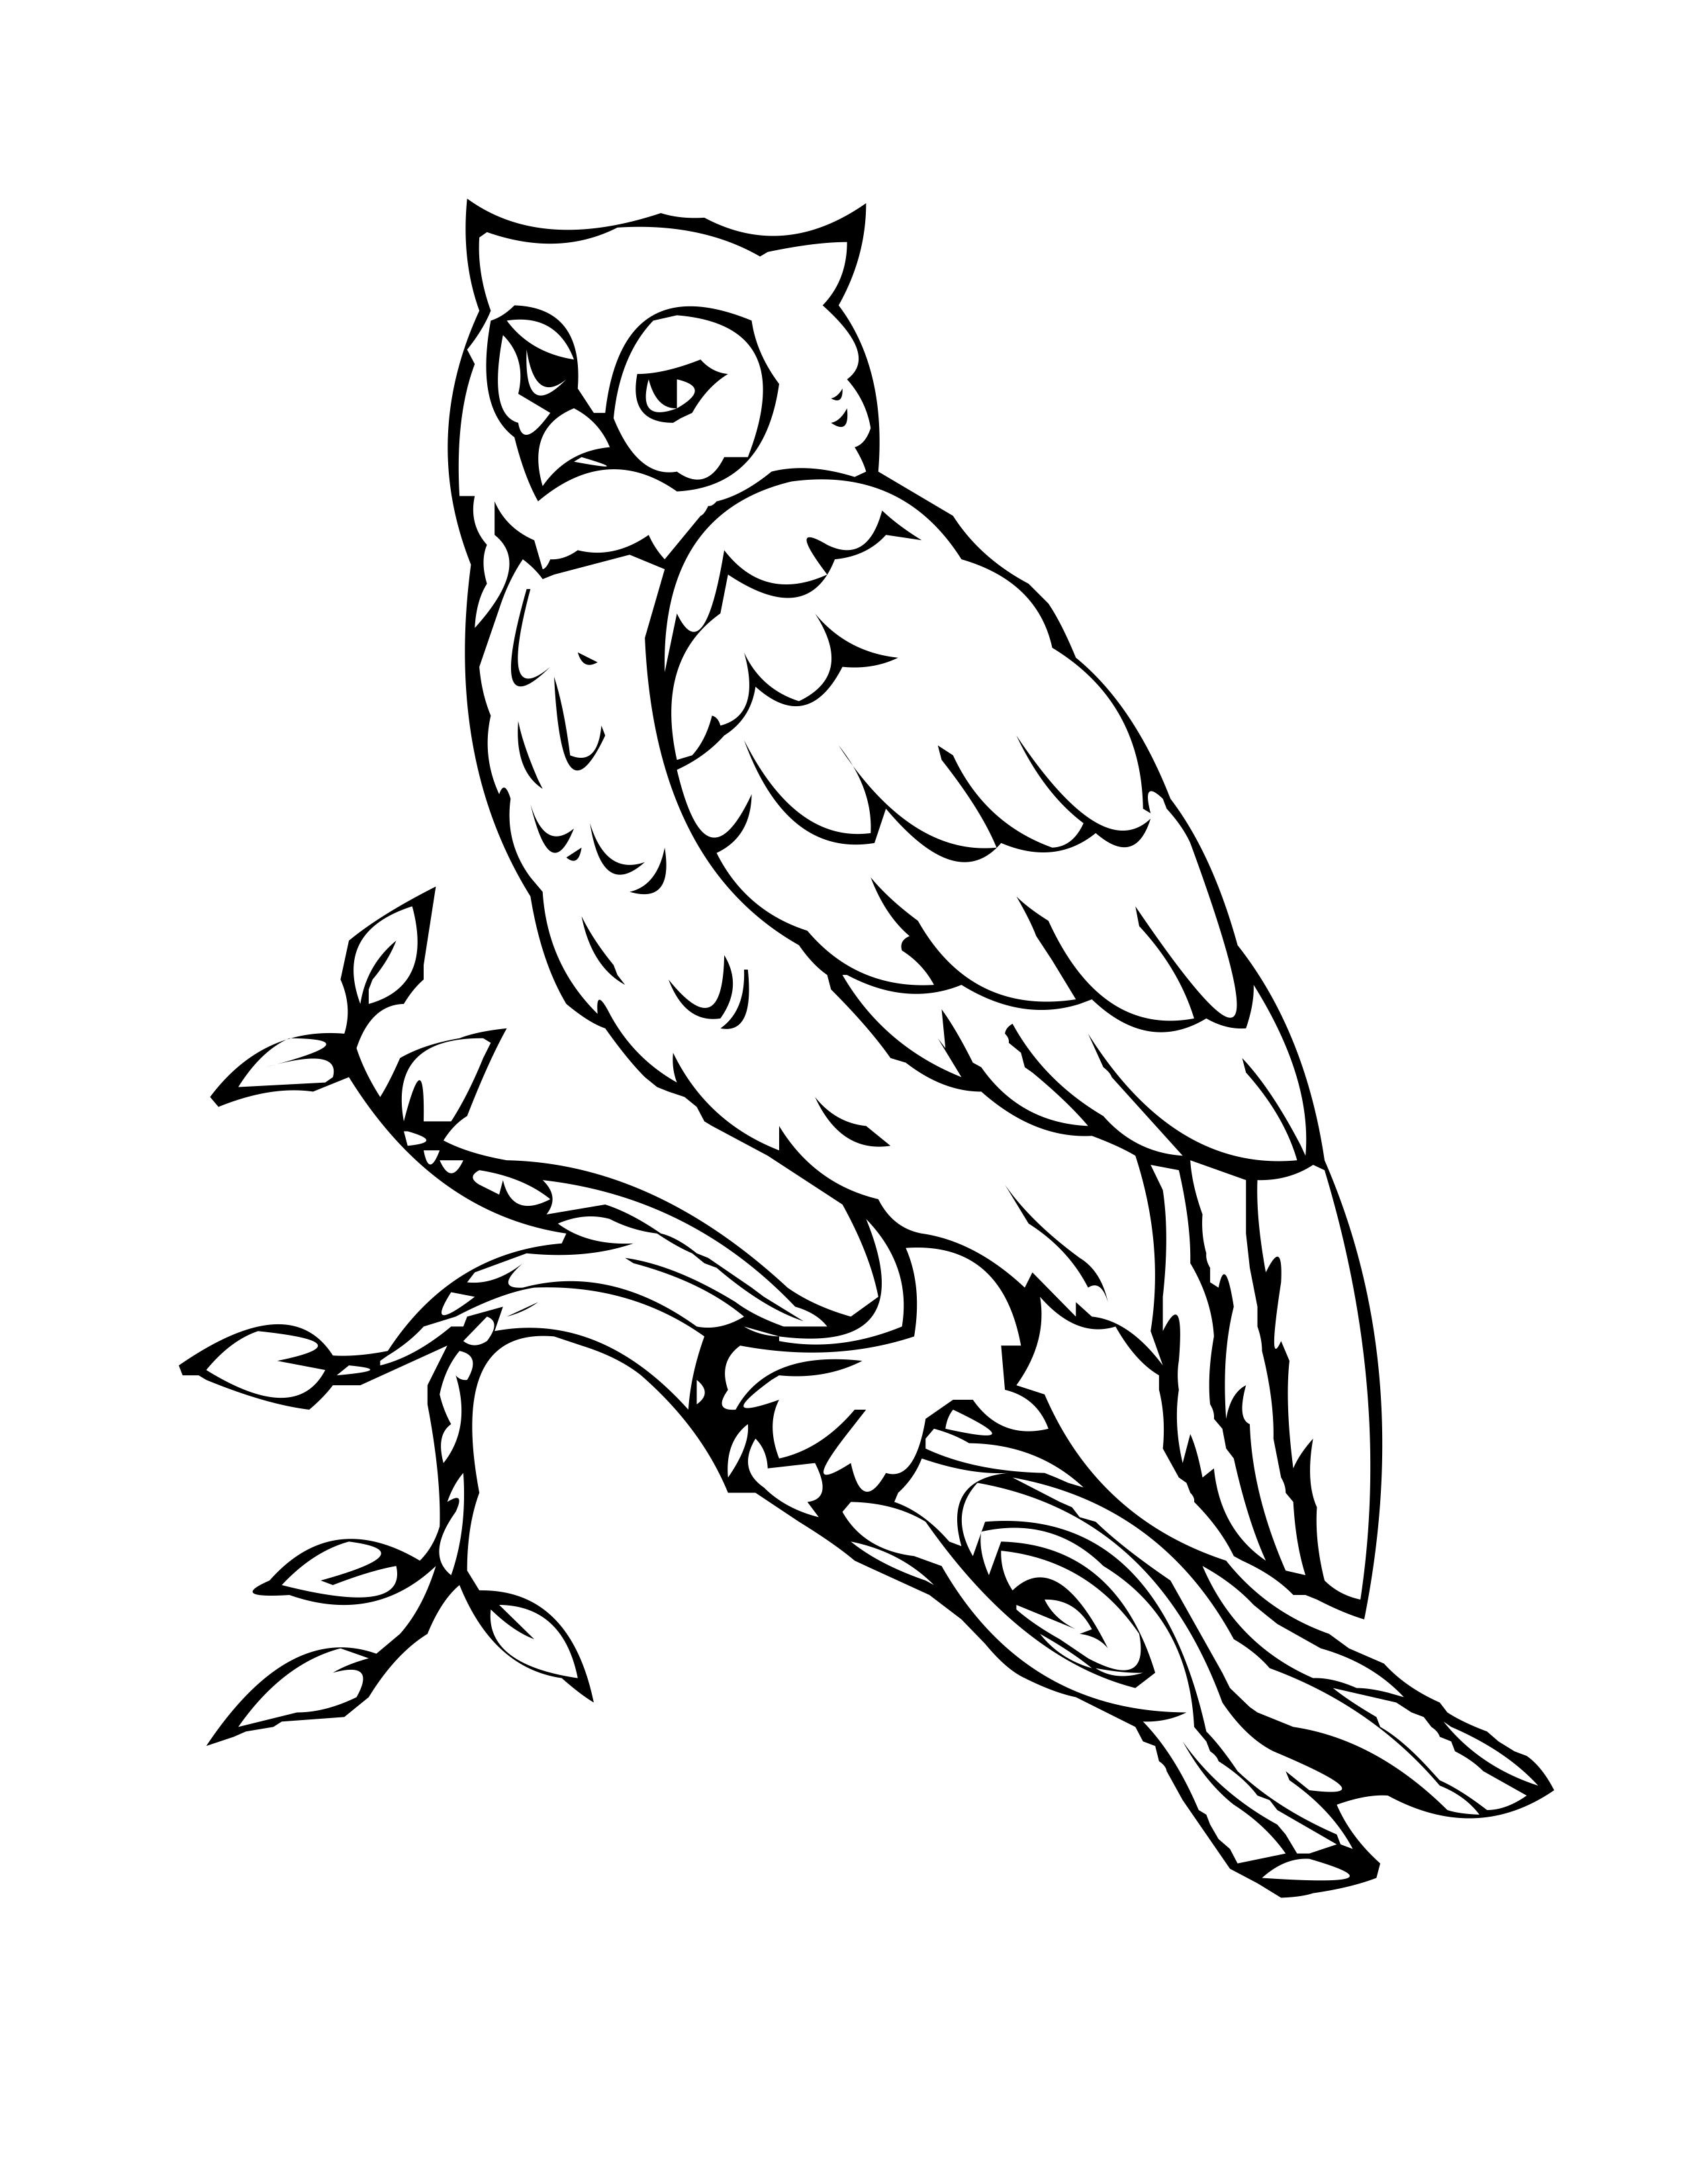 Free Printable Owl Coloring Pages For Kids Bird Coloring Pages Owl Coloring Pages Animal Coloring Pages